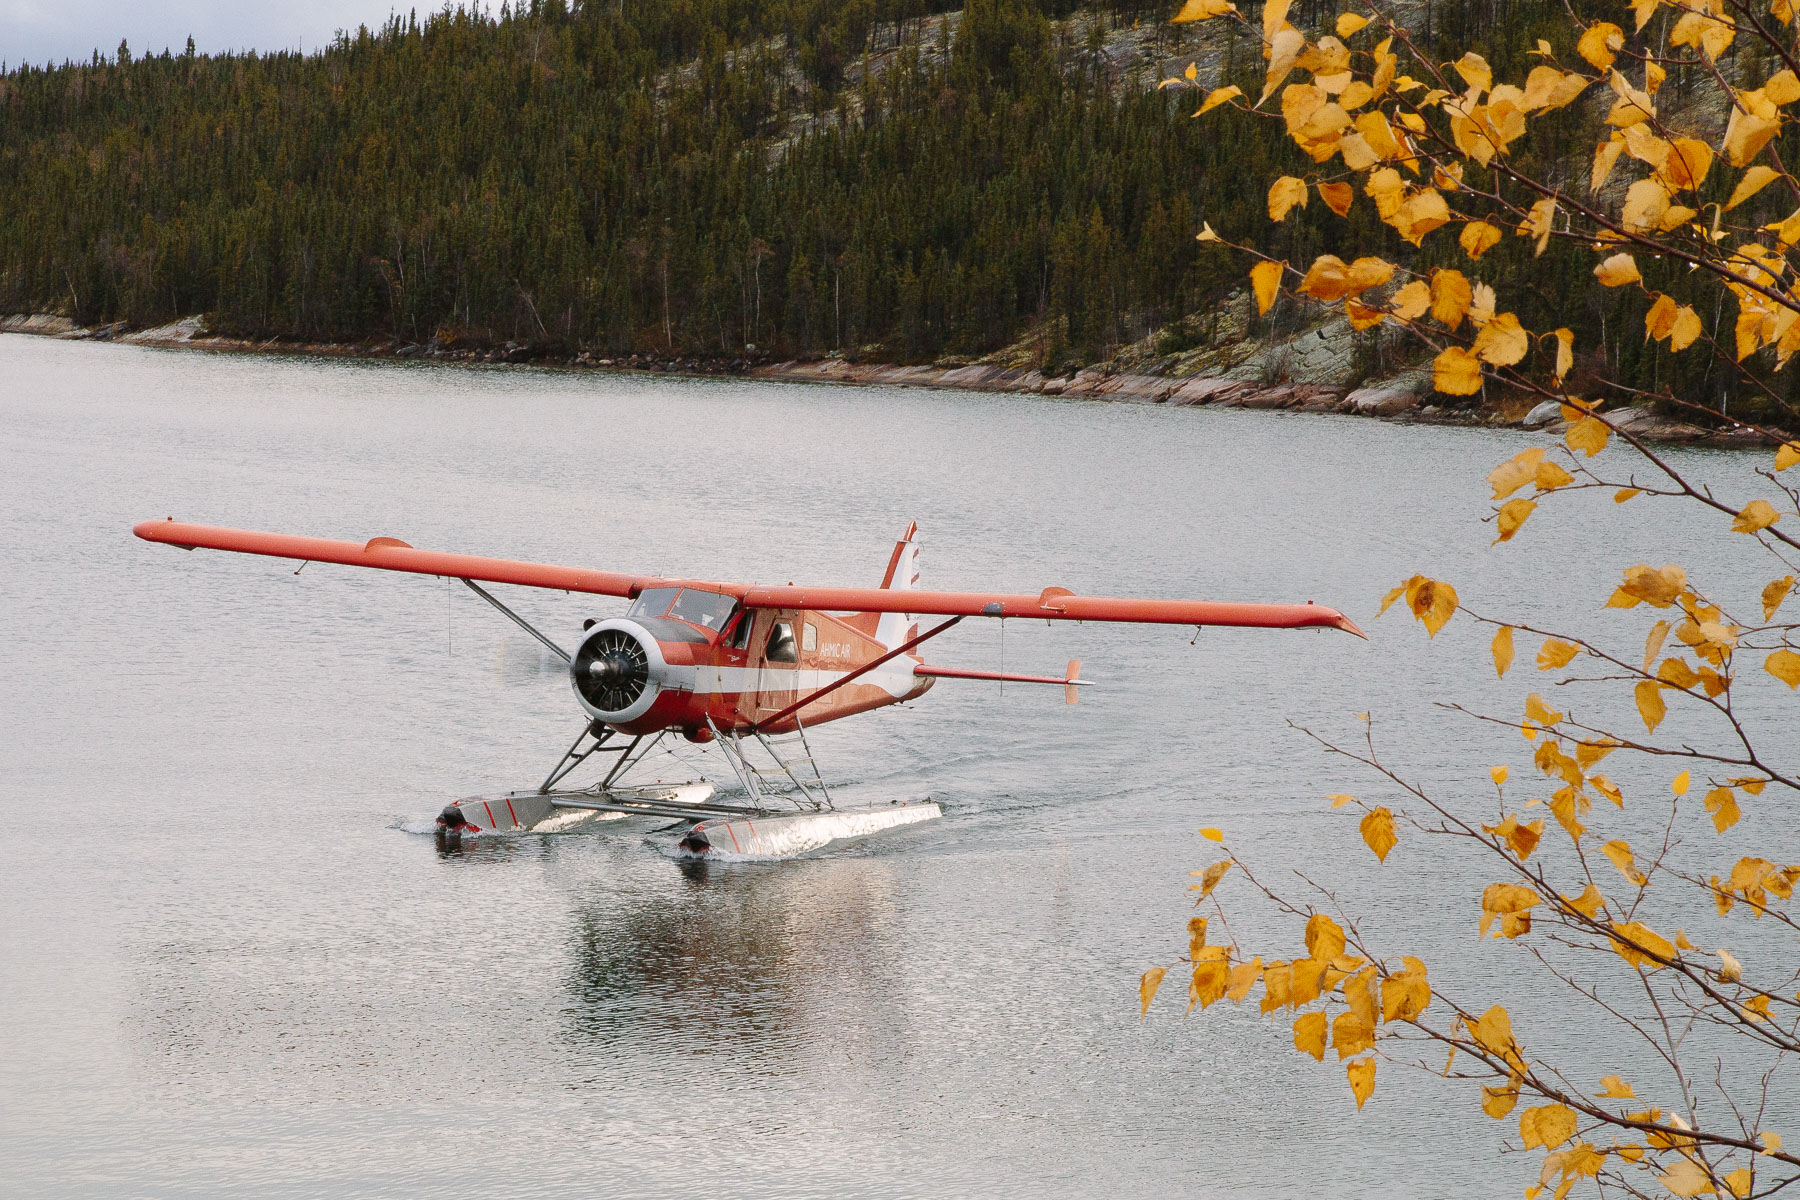 Touchdown. Access to this remote fishing lodge is by seaplane only. Pictured is a 1957 DeHavilland Beaver, run out of Yellowknife by AHMIC Air.